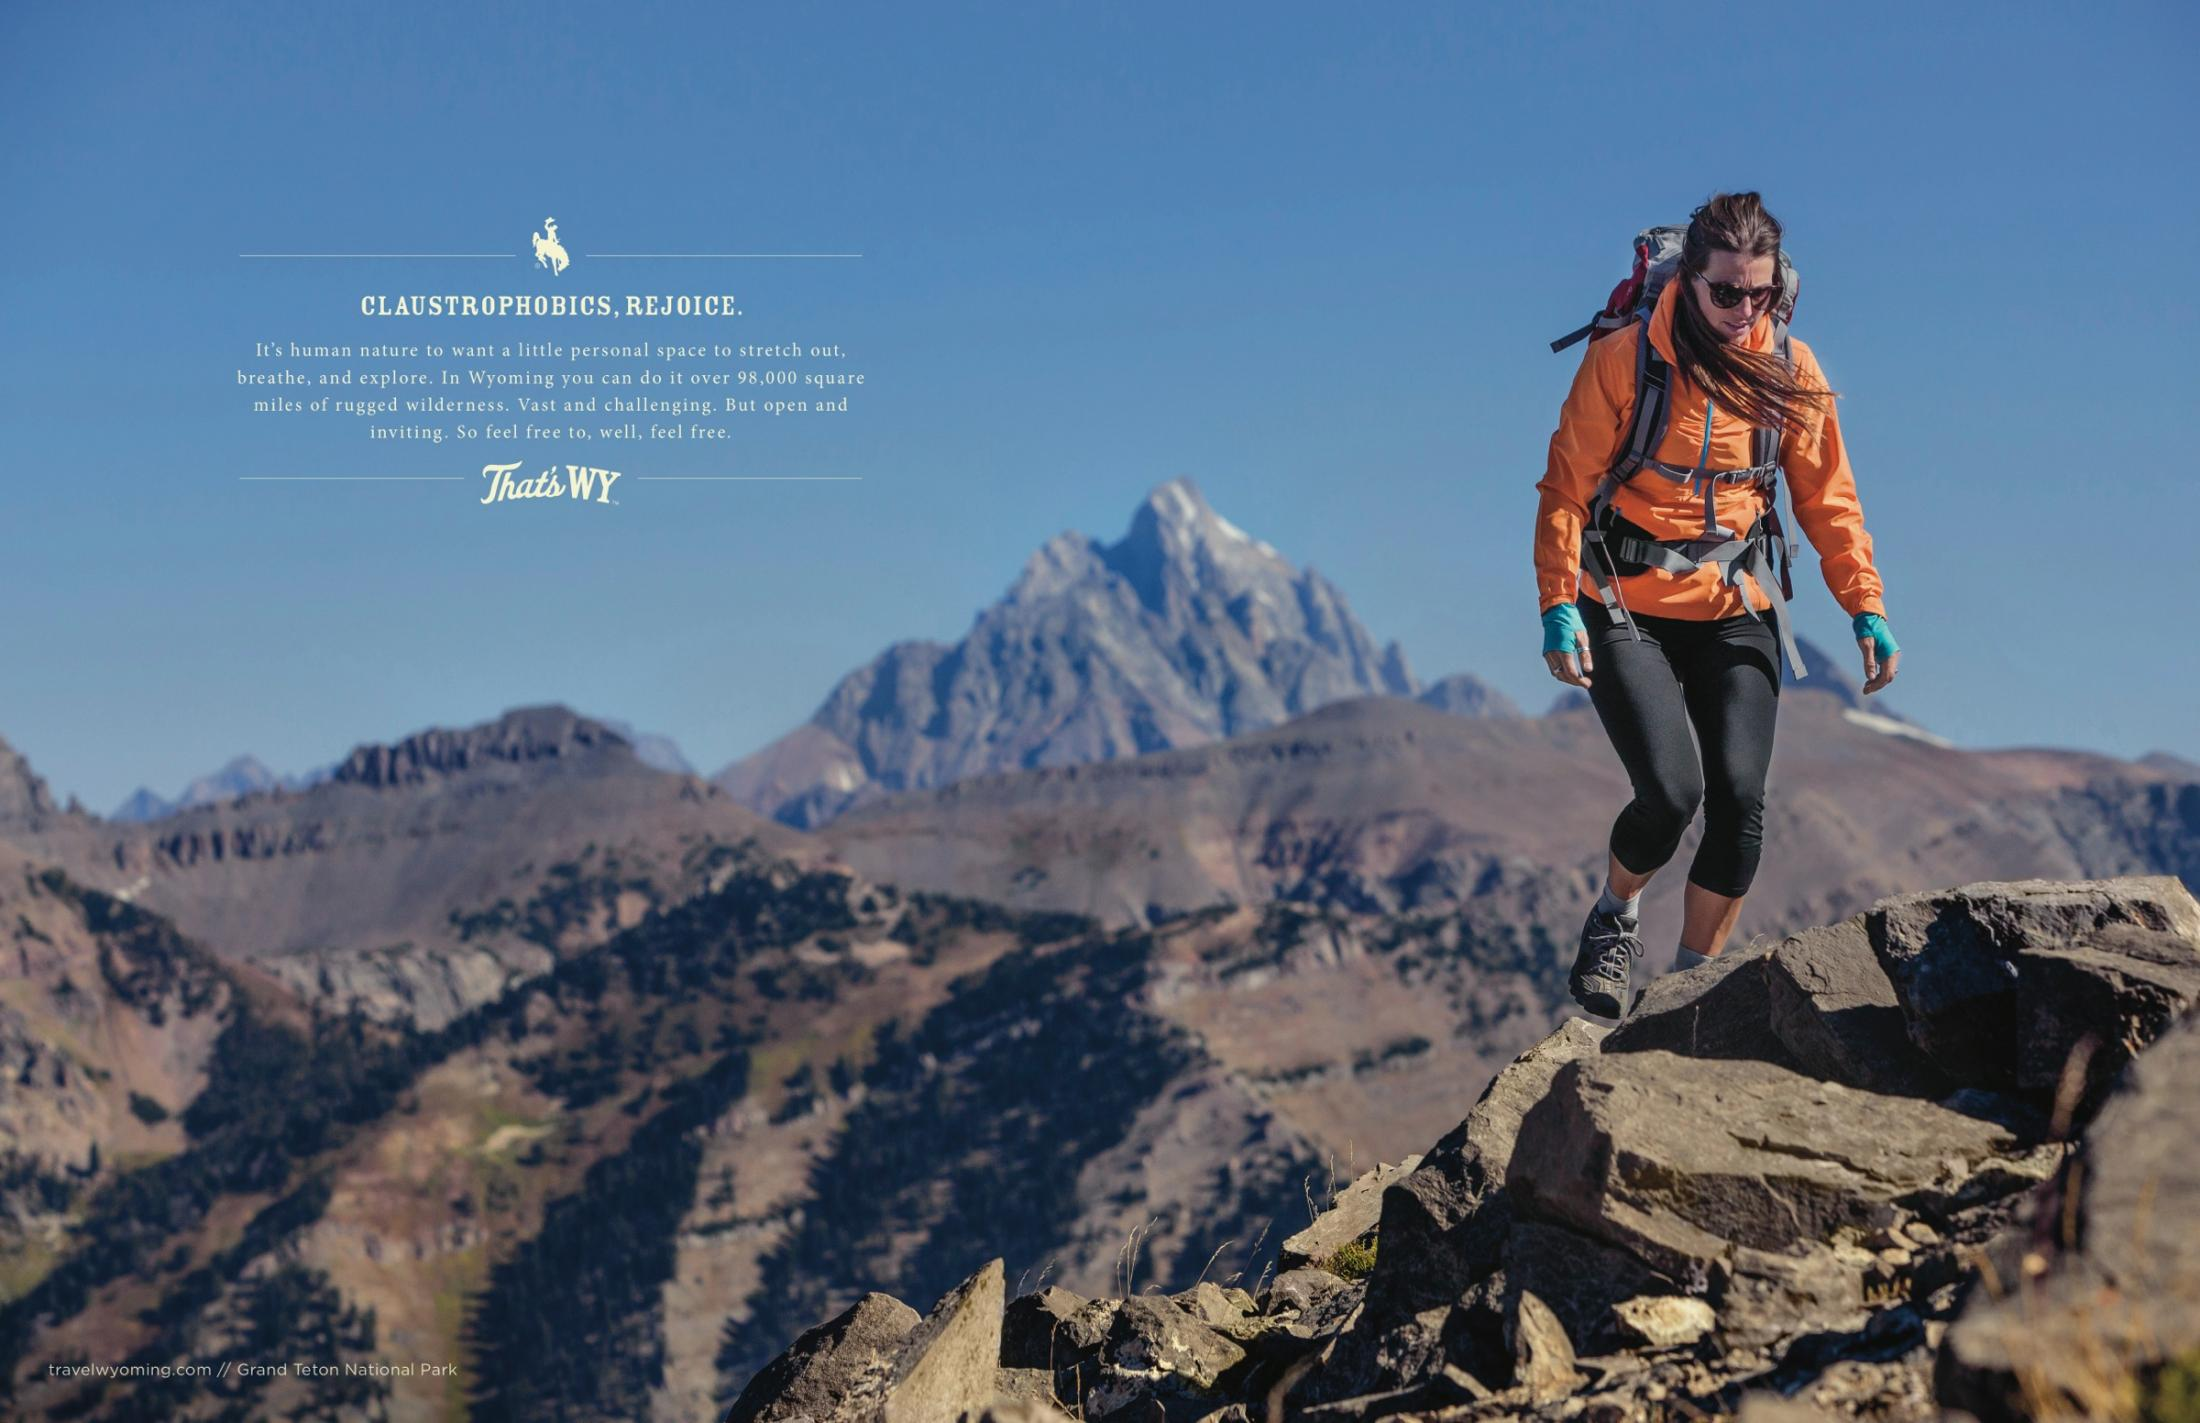 Wyoming Office of Tourism Print Ad -  Claustrophobics